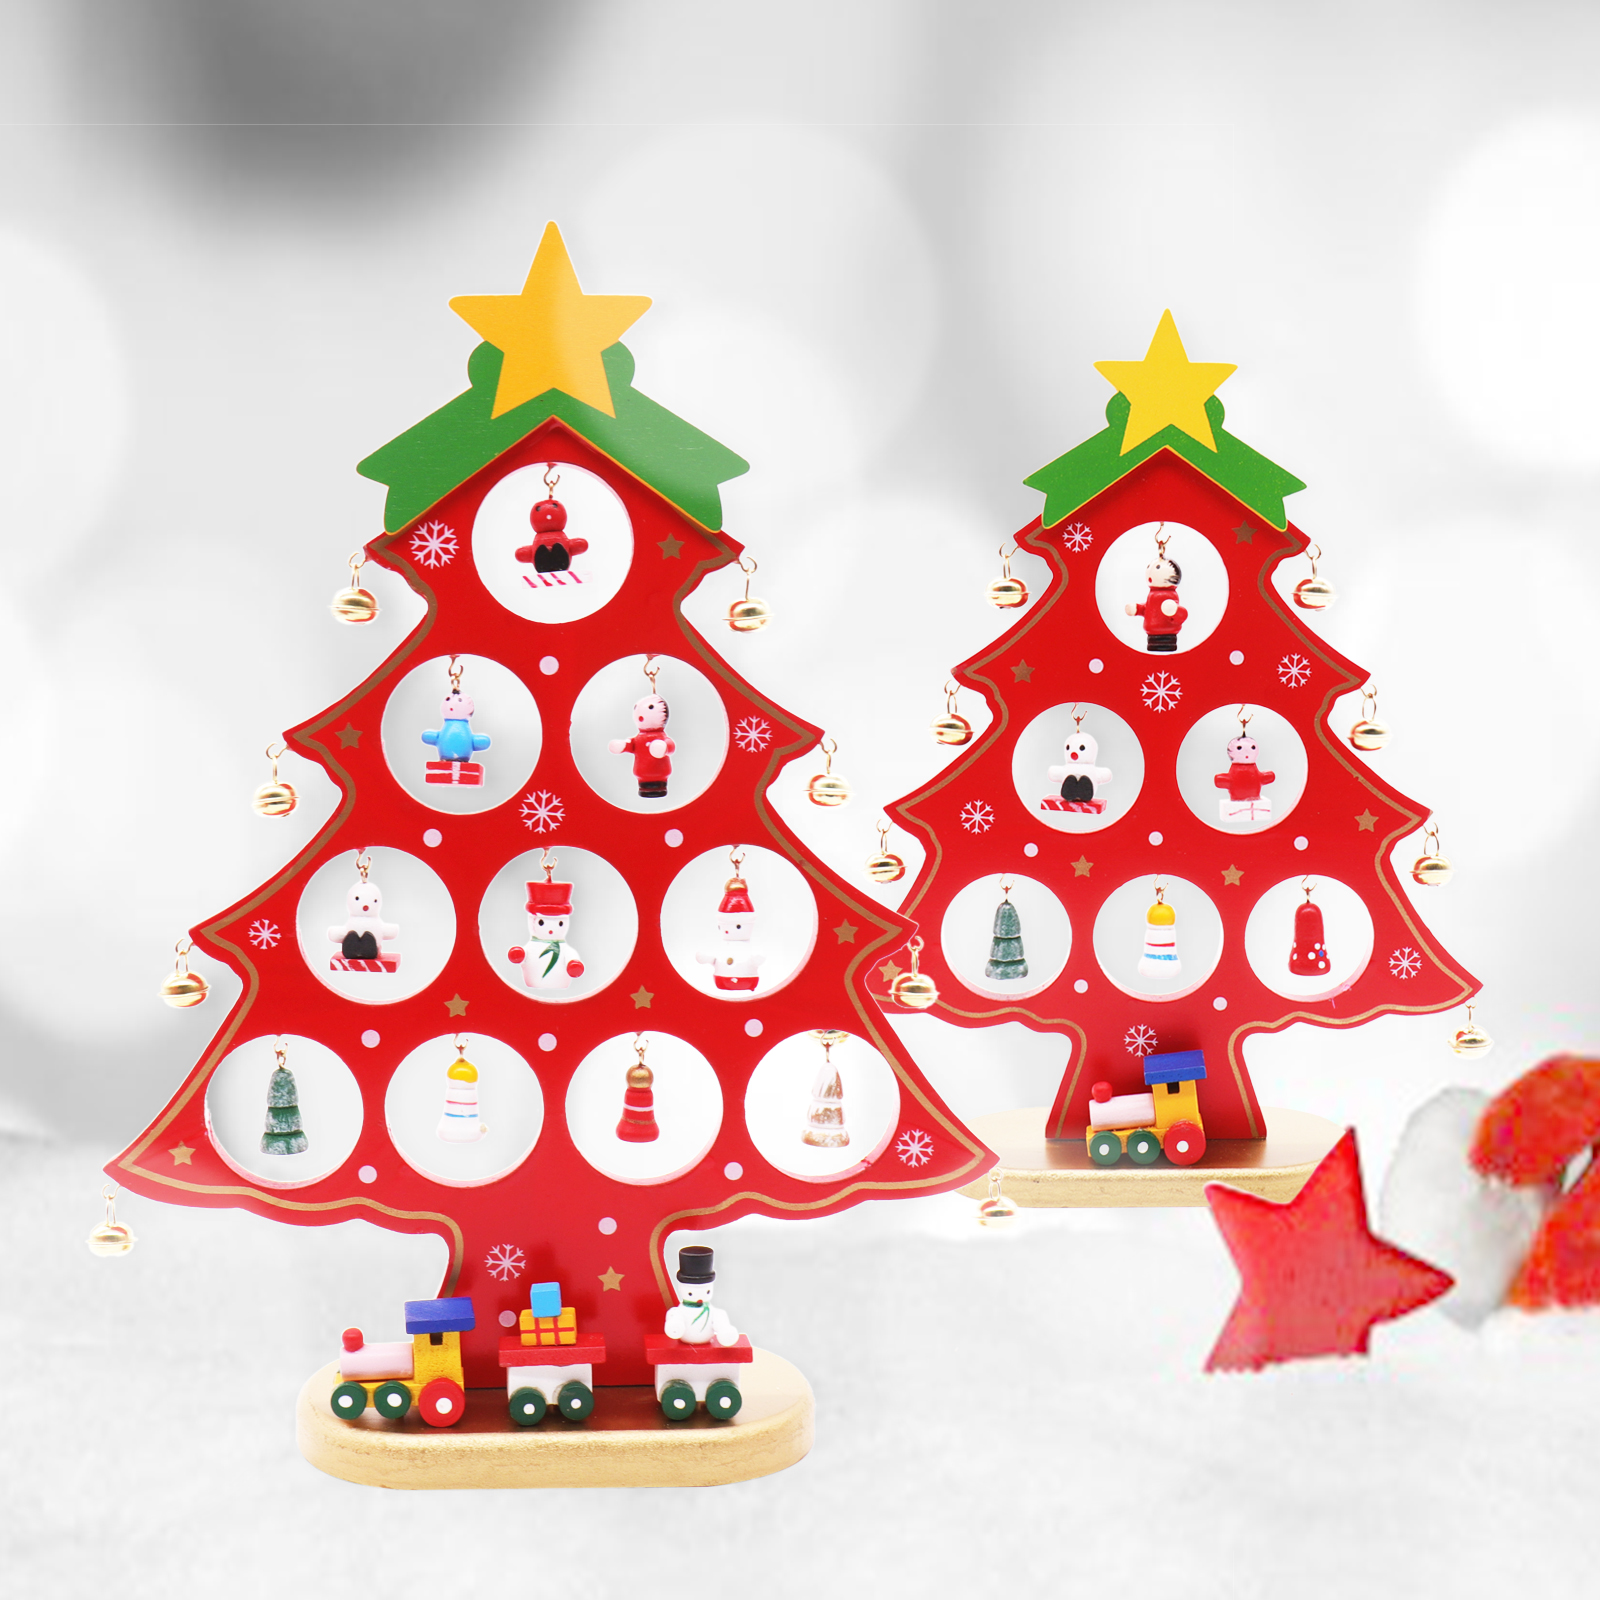 Us 8 99 70 Off Wooden Artificial Desk Christmas Tree For Home Xmas Decorations Ornaments Kids Mini Wood Tree Gift Cristmas Party Decoration On